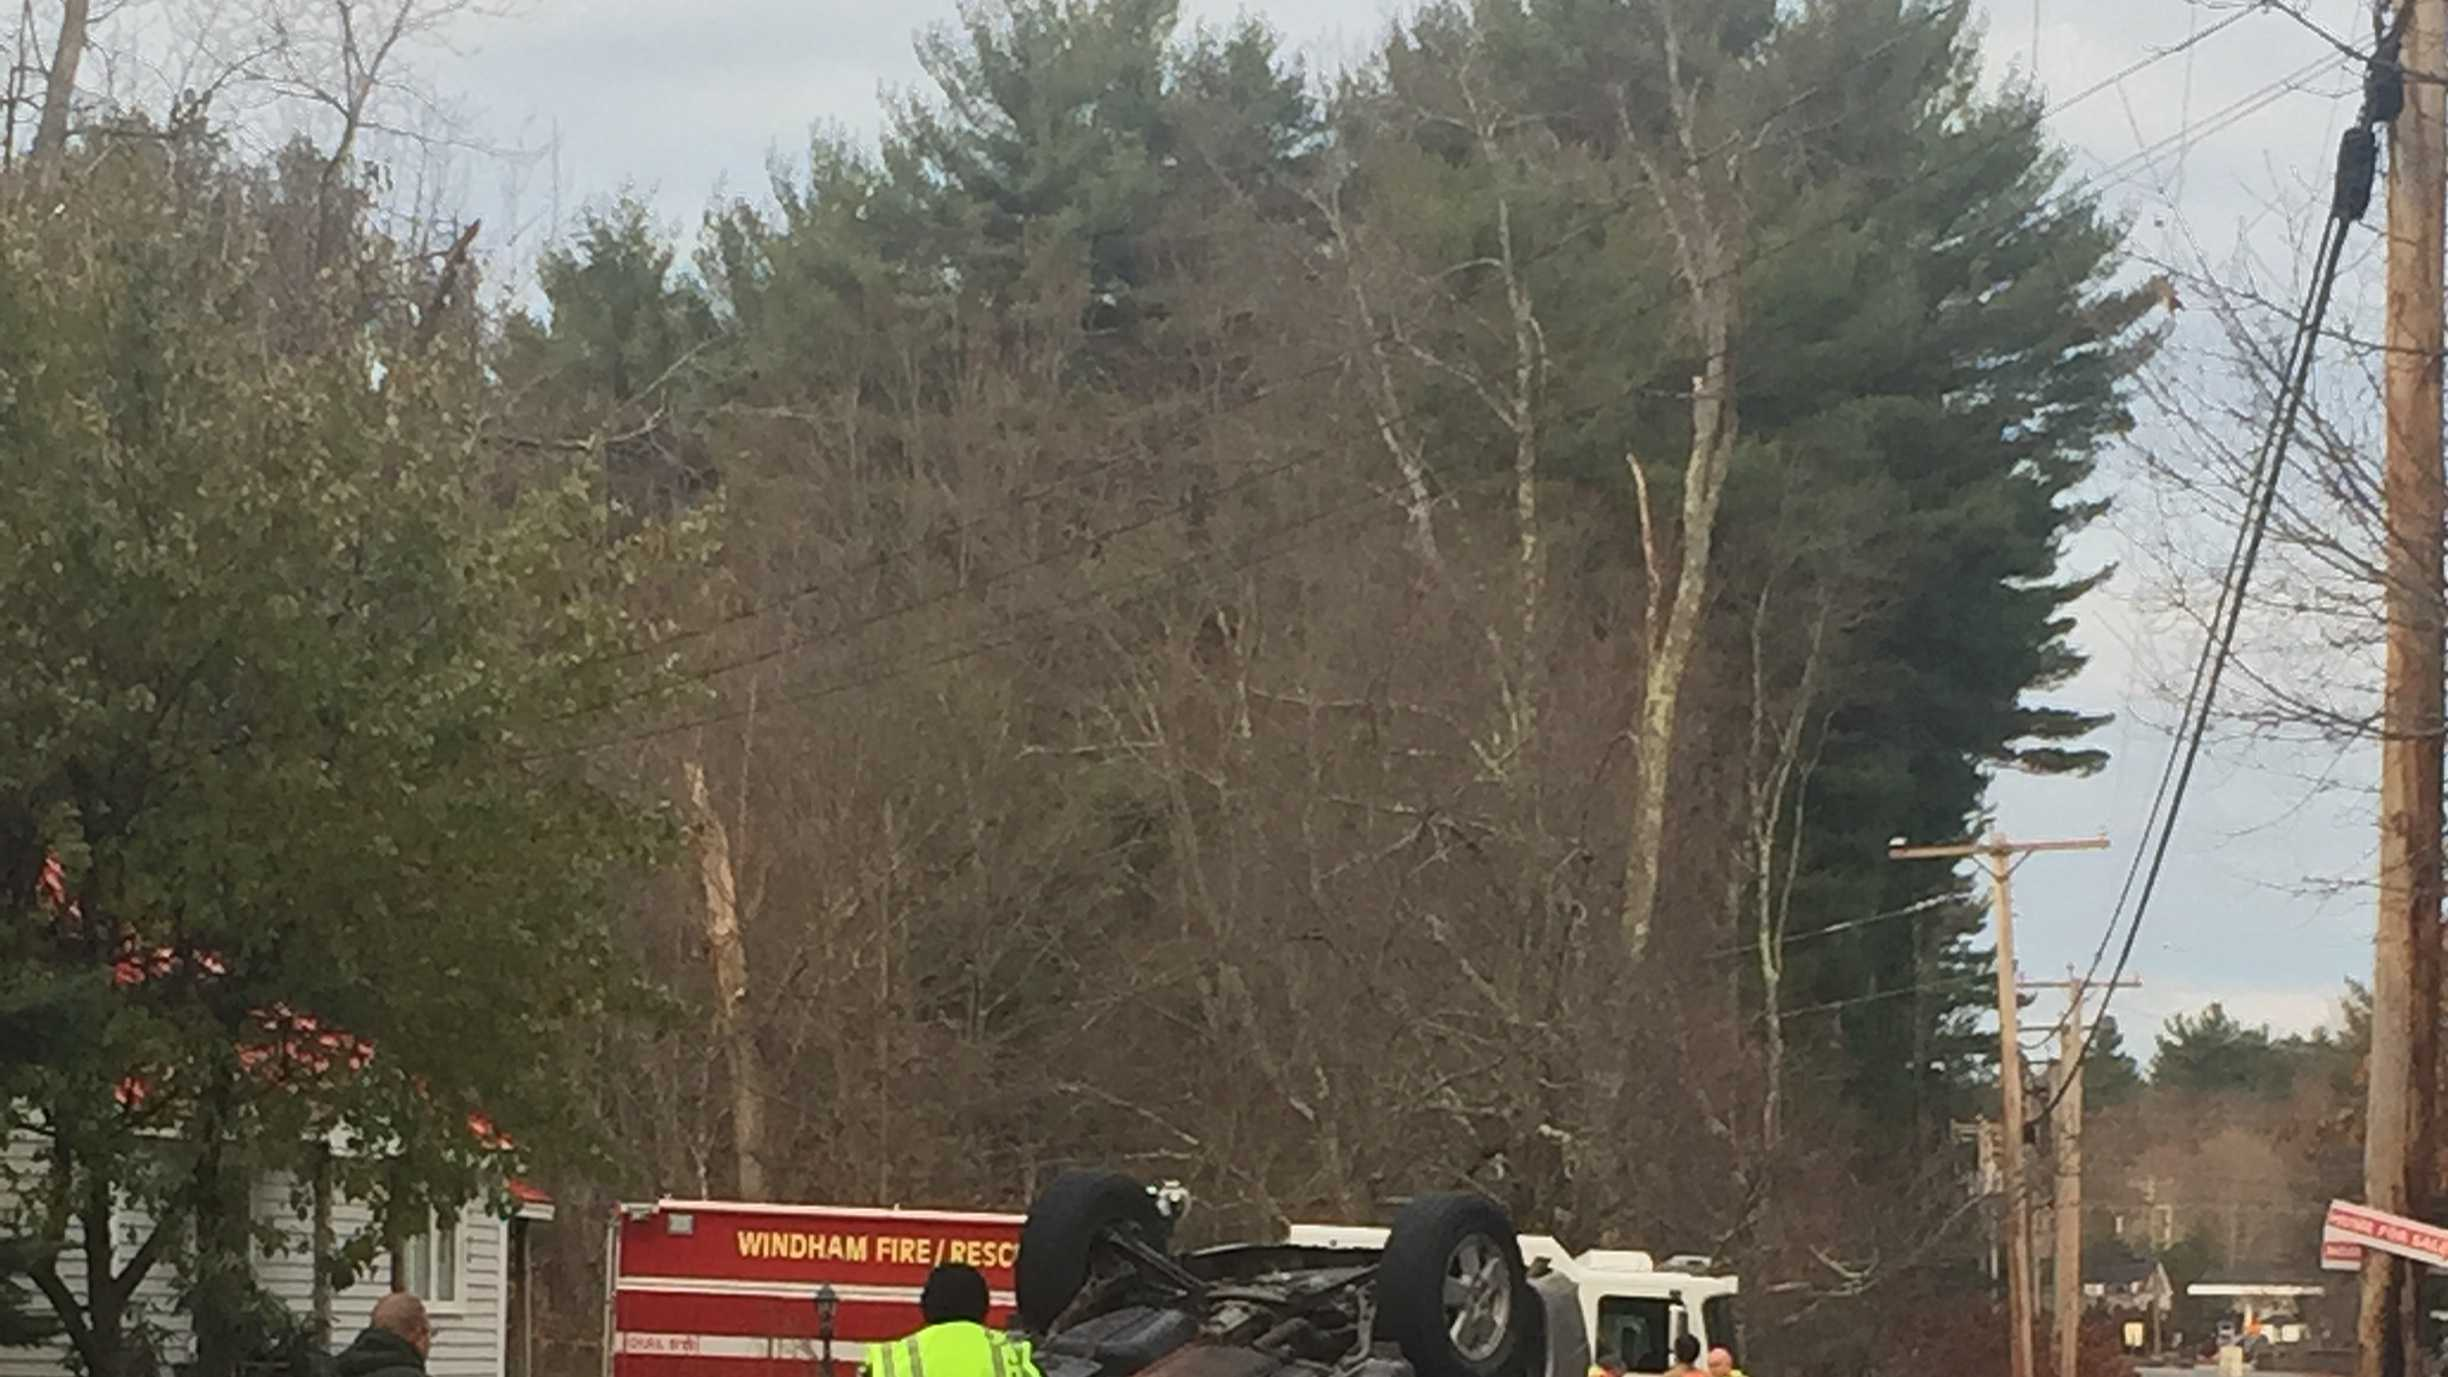 The Windham Police Department is trying to determine what caused a sport utility vehicle to roll over on Cobbetts Pond Road in Windham this morning.